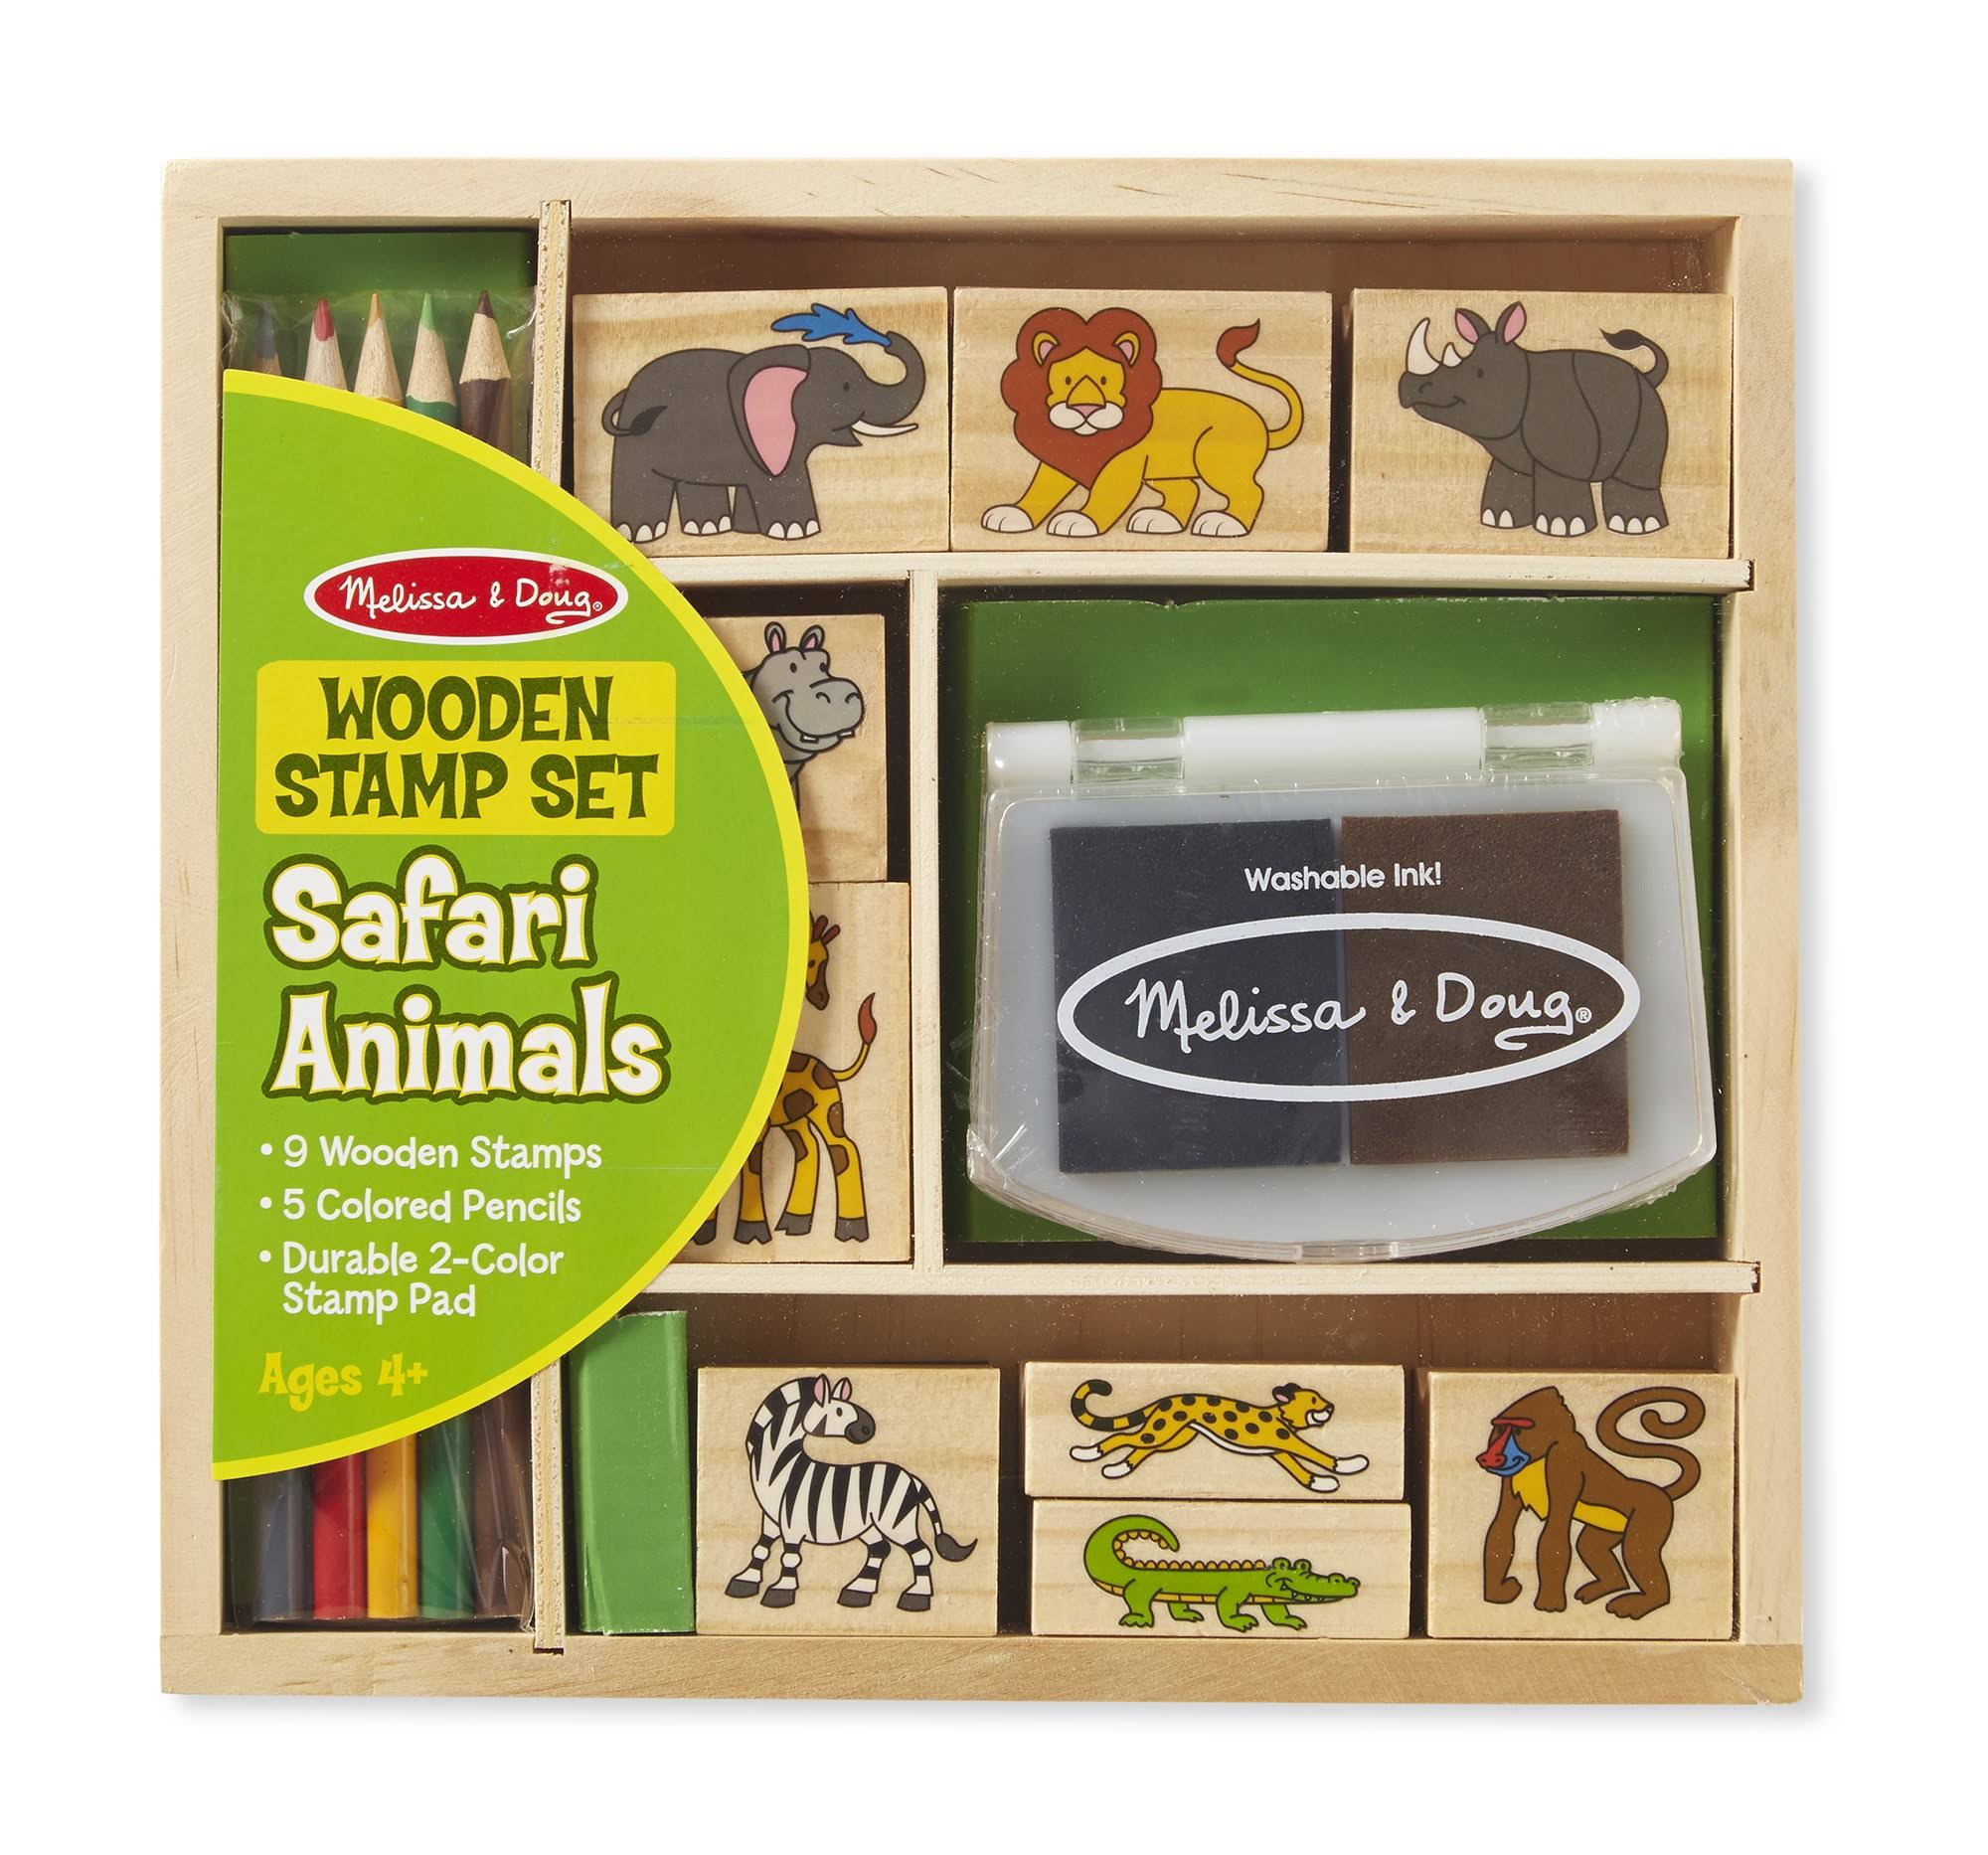 Melissa & Doug - Wooden Stamp Set - Safari Animals